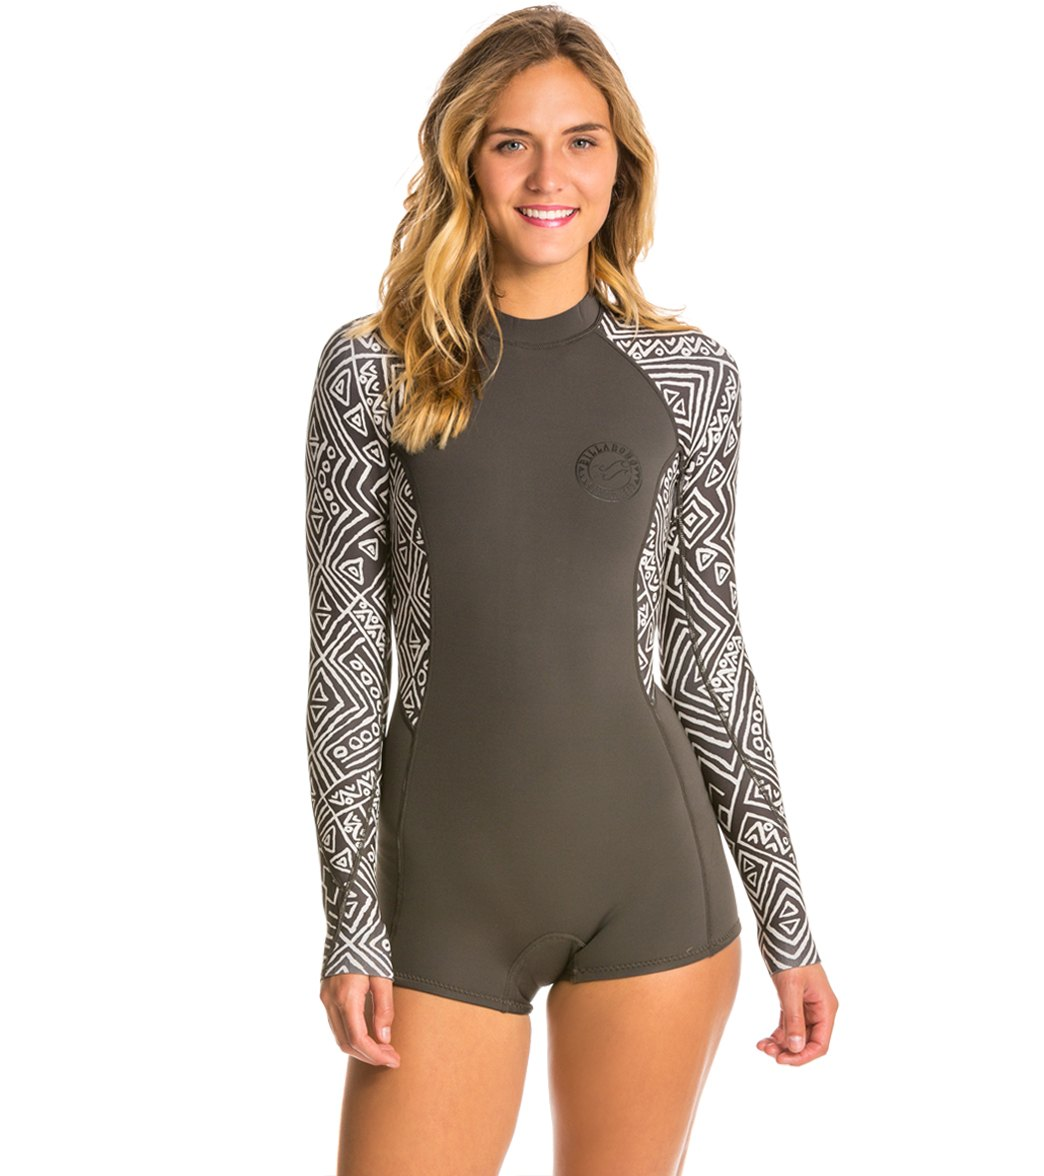 0697d2e4cffd ... Billabong Women's 2MM Spring Fever Long Sleeve Spring Suit Wetsuit.  Play Video. MODEL MEASUREMENTS